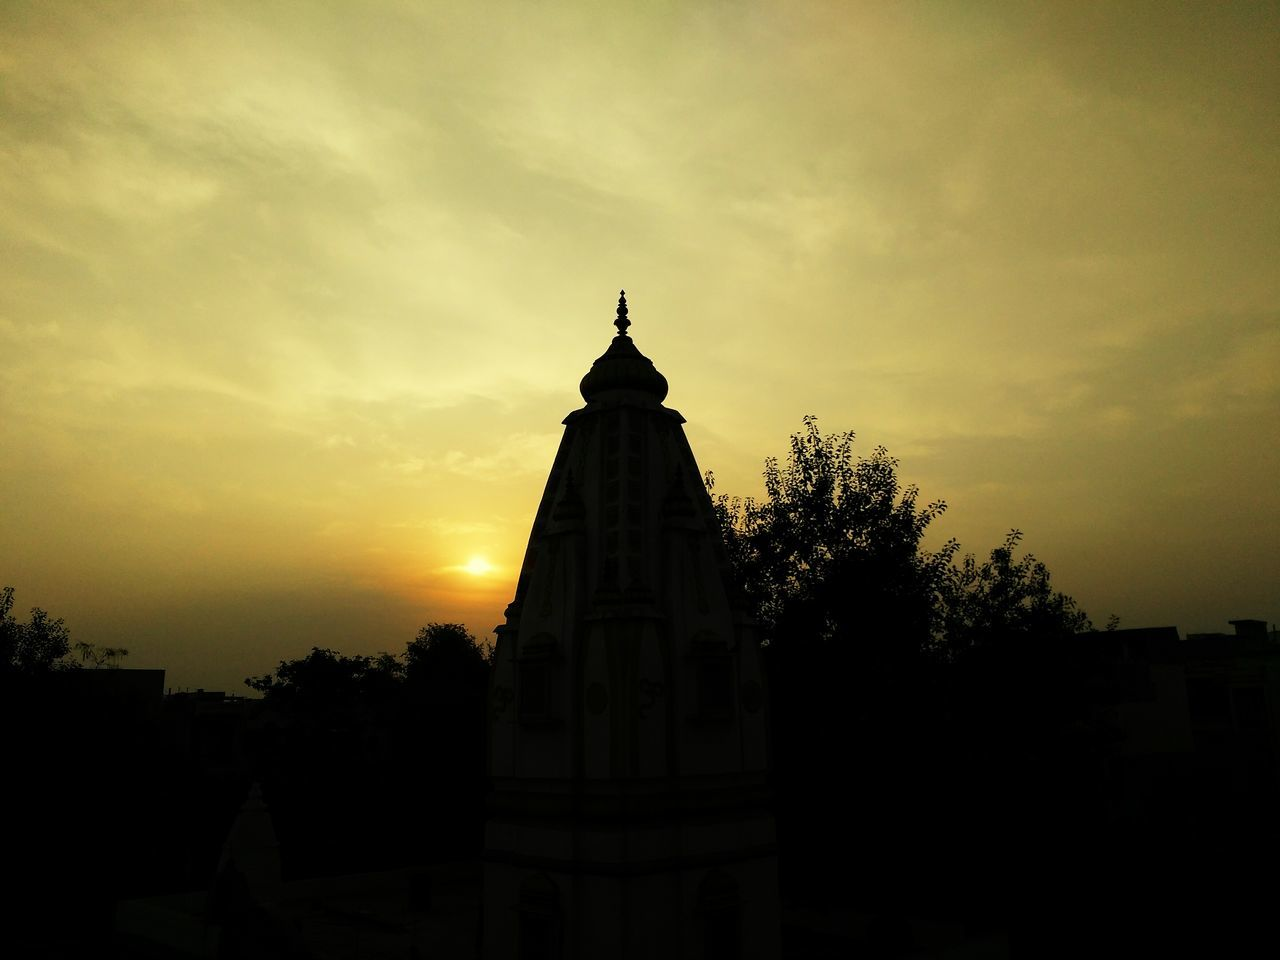 sunset, sky, religion, architecture, tree, silhouette, spirituality, built structure, no people, building exterior, place of worship, cloud - sky, outdoors, beauty in nature, nature, day